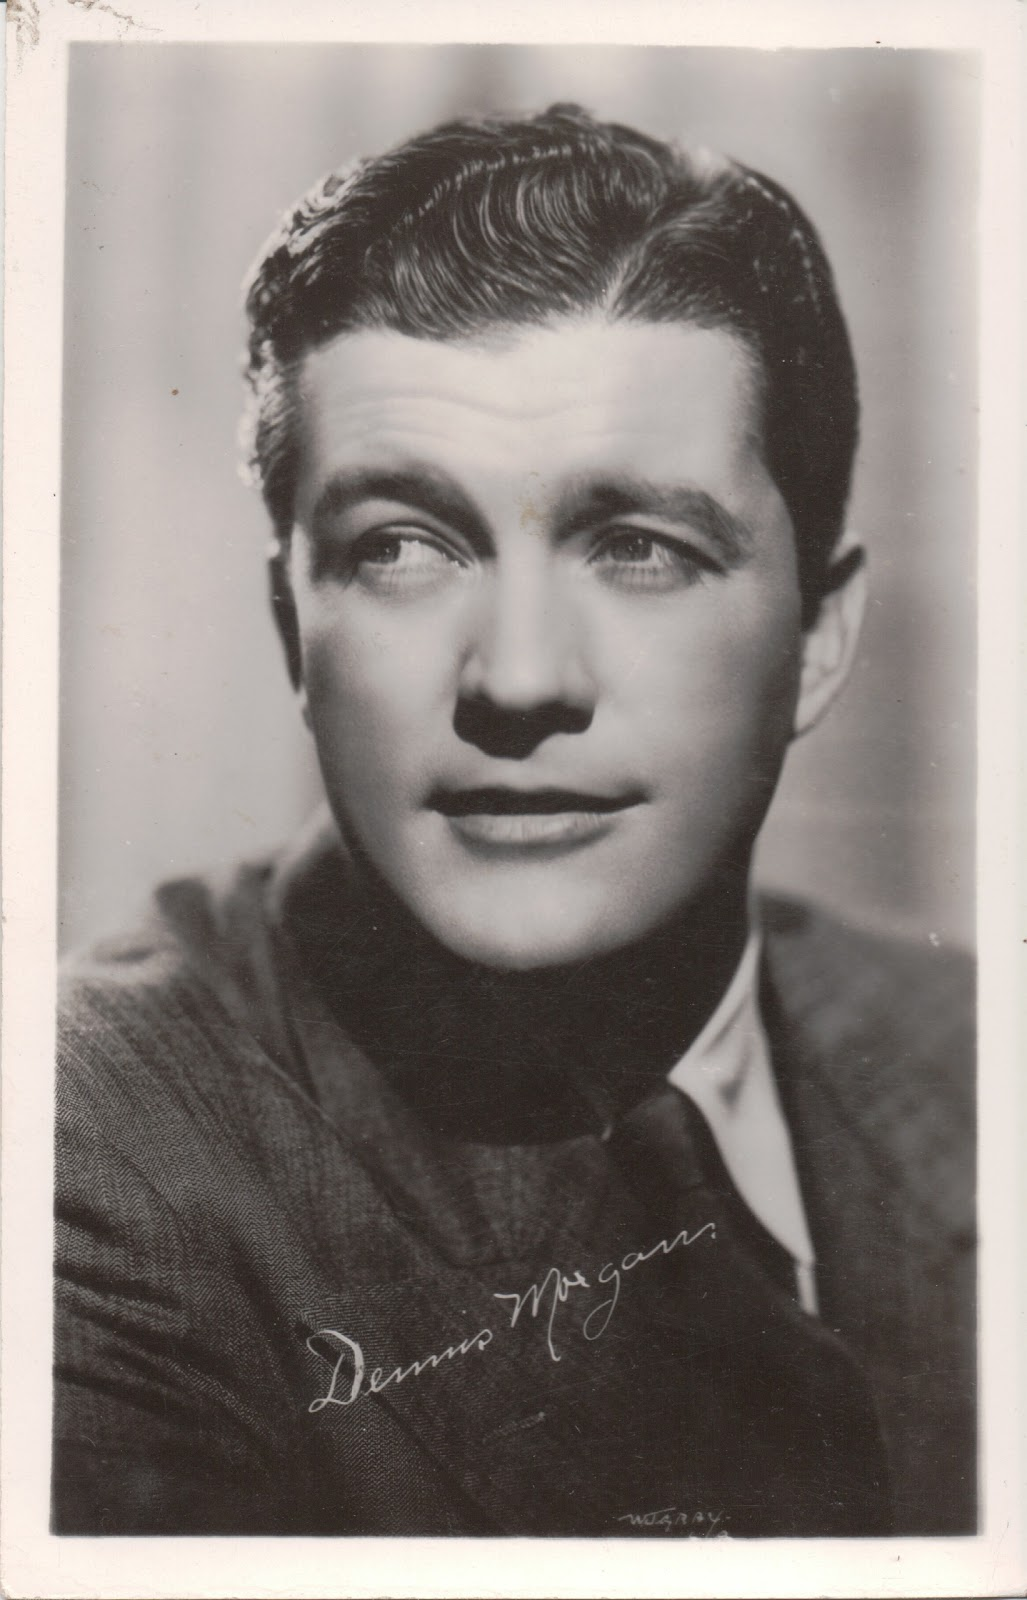 Dennis Morgan Net Worth